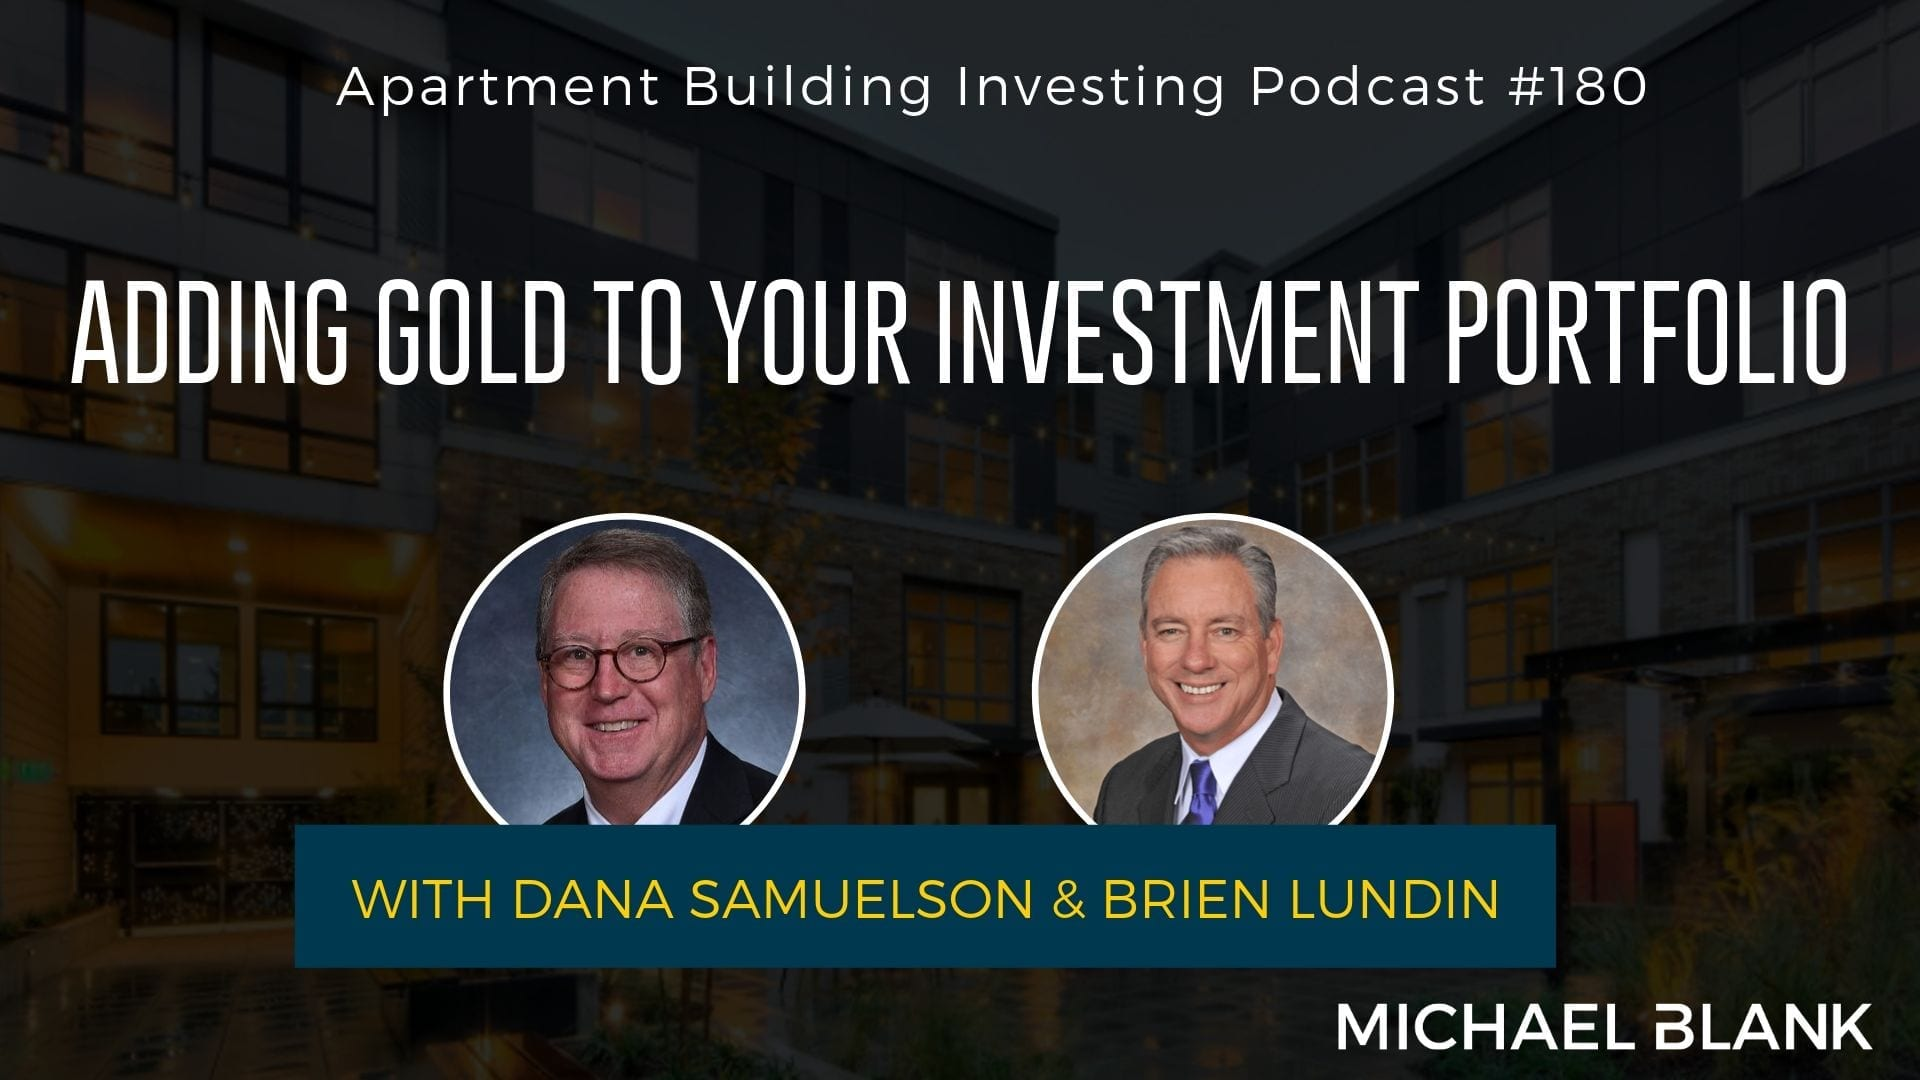 MB 180: Adding Gold to Your Investment Portfolio – With Dana Samuelson & Brien Lundin